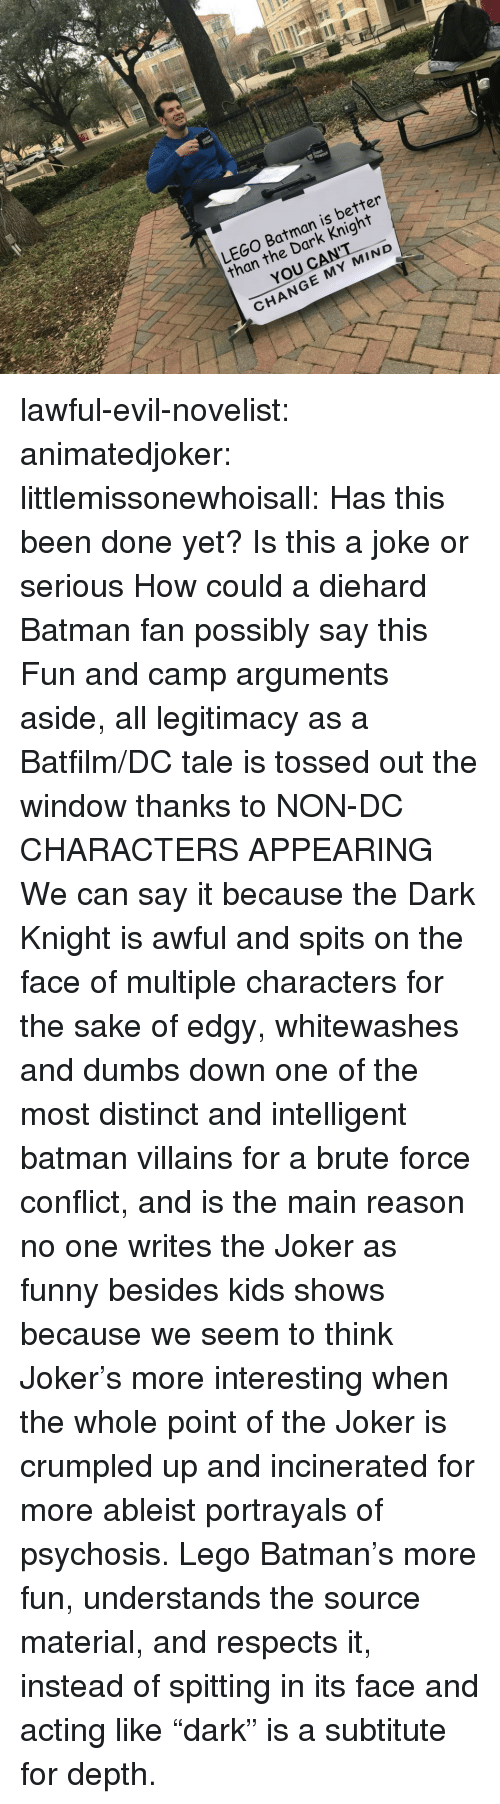 "Batman, Funny, and Joker: LEGO Batman is better  than the Dark Knight  YOU CANT  CHANGE MY MIND lawful-evil-novelist:  animatedjoker:   littlemissonewhoisall: Has this been done yet?  Is this a joke or serious How could a diehard Batman fan possibly say this Fun and camp arguments aside, all legitimacy as a Batfilm/DC tale is tossed out the window thanks to NON-DC CHARACTERS APPEARING    We can say it because the Dark Knight is awful and spits on the face of multiple characters for the sake of edgy, whitewashes and dumbs down one of the most distinct and intelligent batman villains for a brute force conflict, and is the main reason no one writes the Joker as funny besides kids shows because we seem to think Joker's more interesting when the whole point of the Joker is crumpled up and incinerated for more ableist portrayals of psychosis. Lego Batman's more fun, understands the source material, and respects it, instead of spitting in its face and acting like ""dark"" is a subtitute for depth."